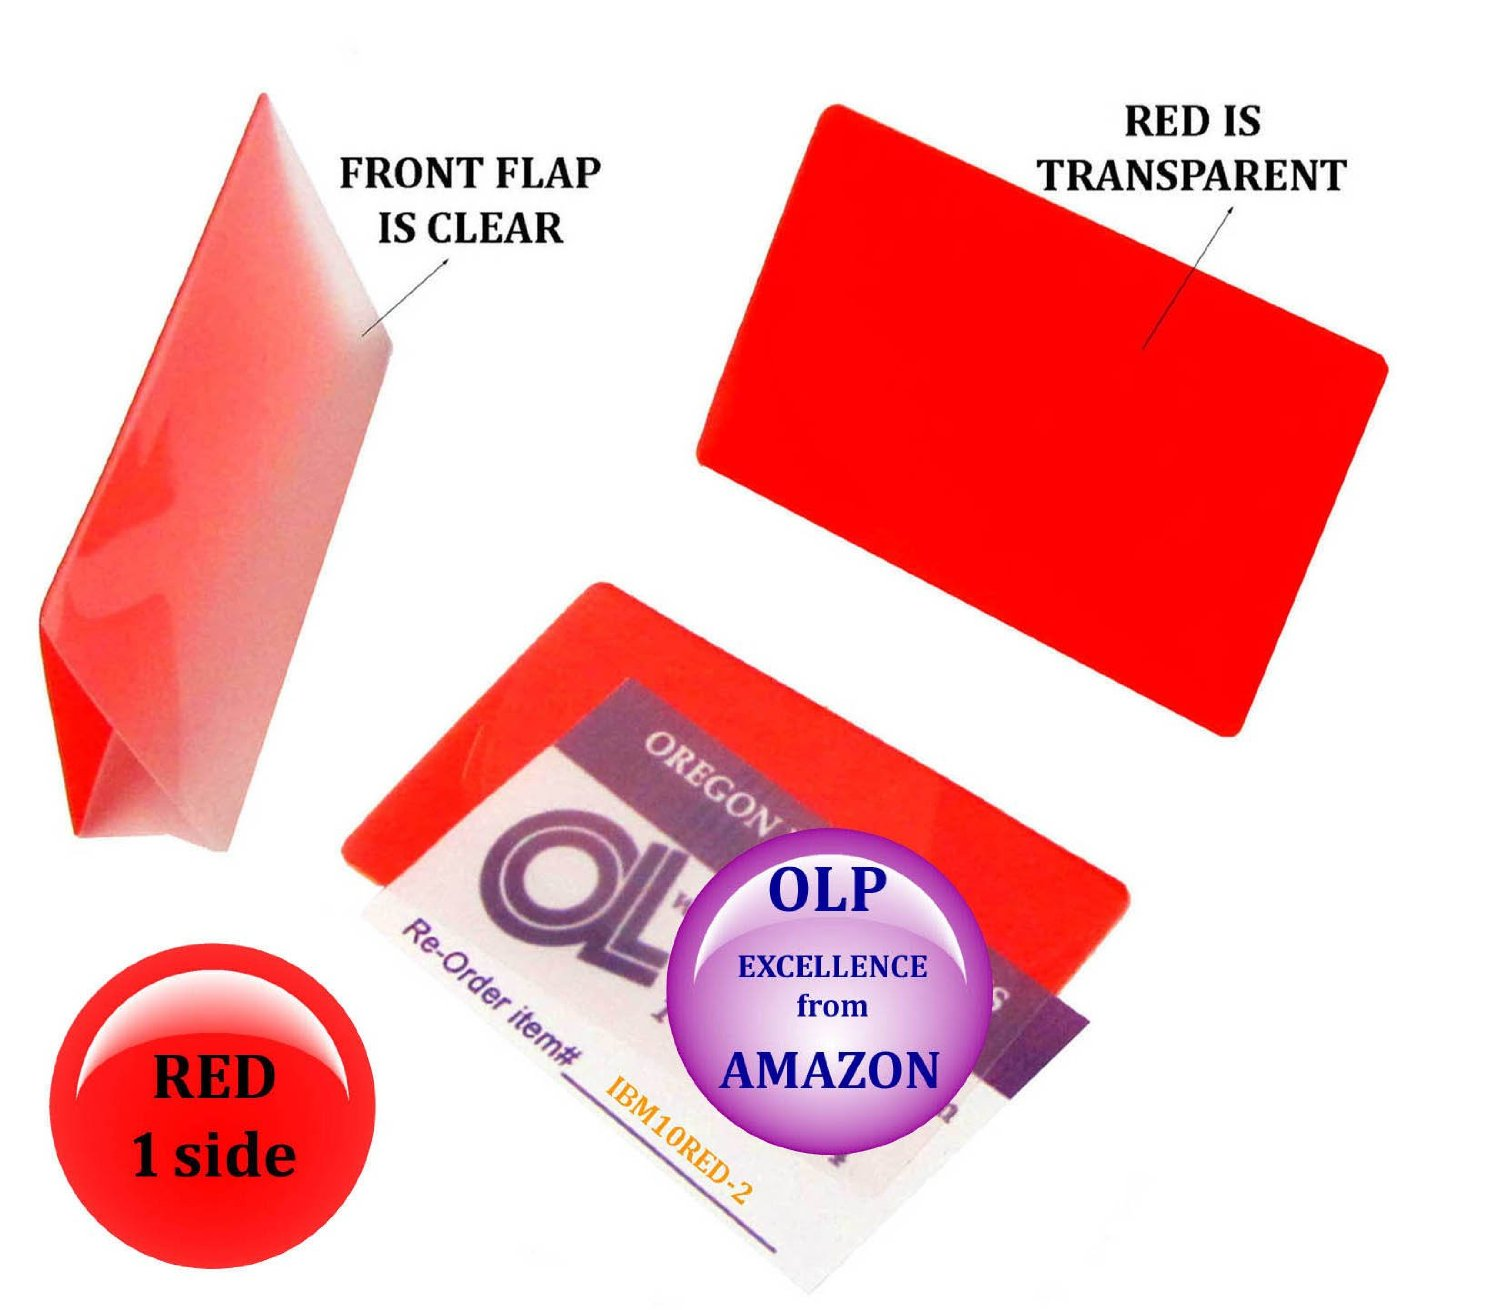 Qty 200 Red/Clear IBM Card Laminating Pouches 2-5/16 x 3-1/4 by LAM-IT-ALL